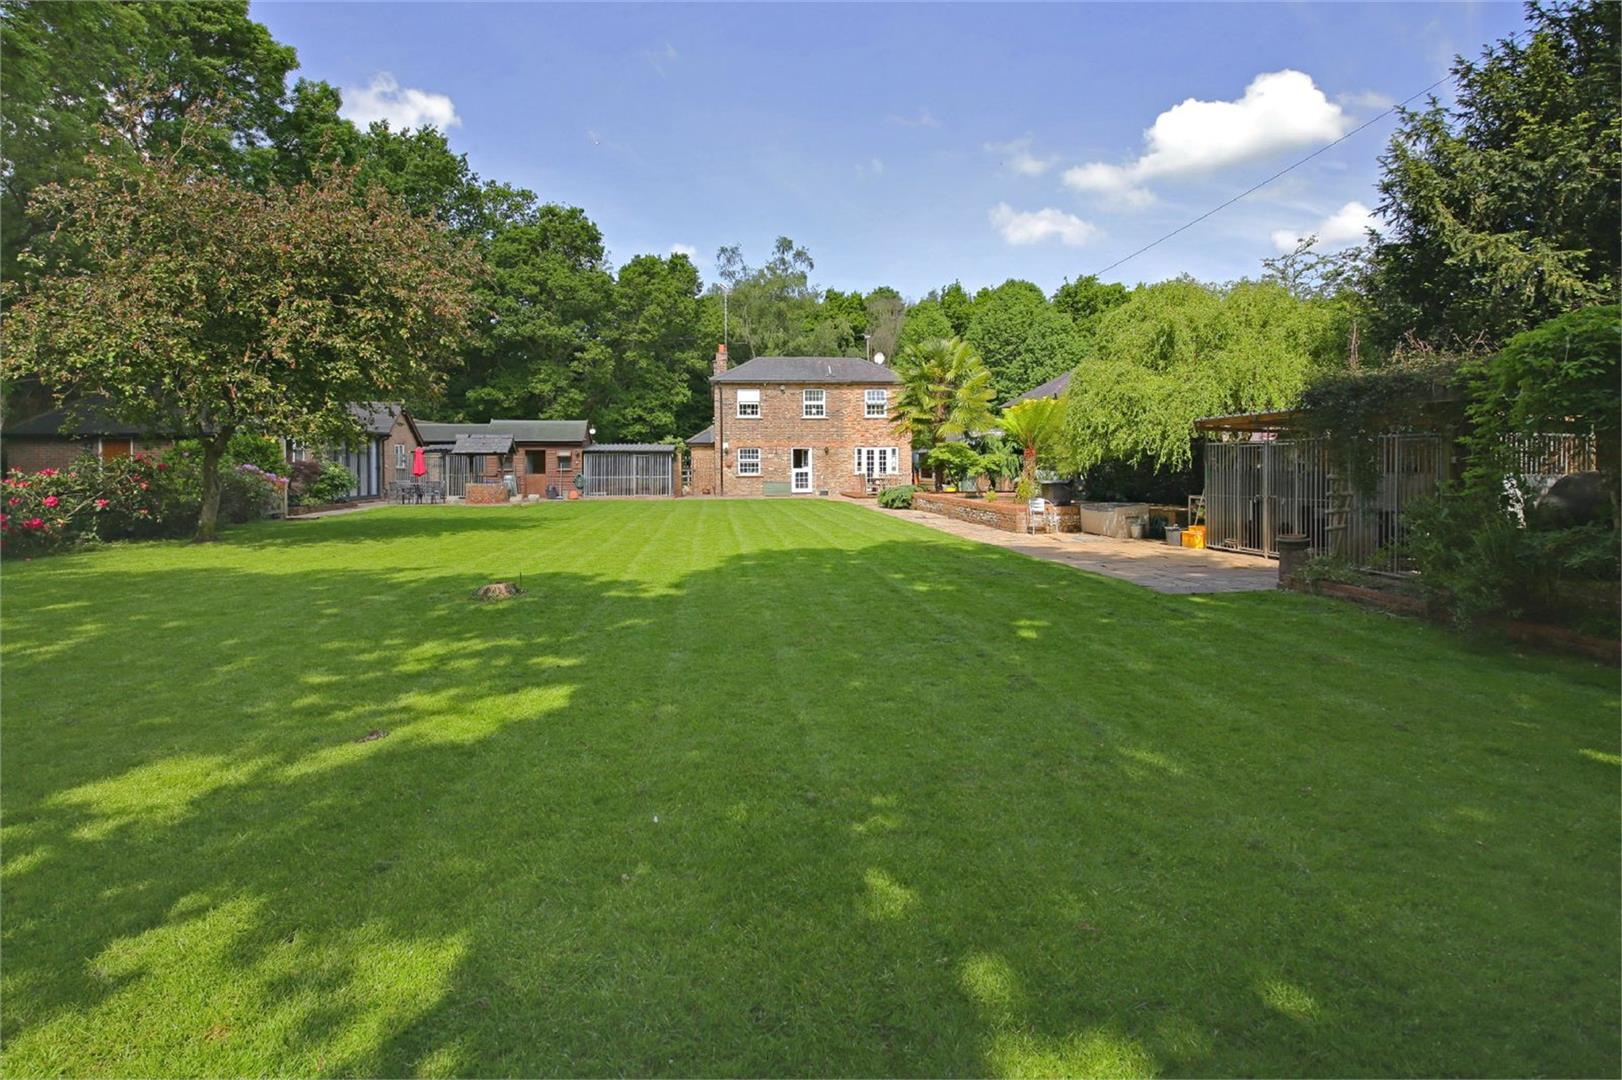 3 bed for sale in Station Road, Bricket Wood - Property Image 1